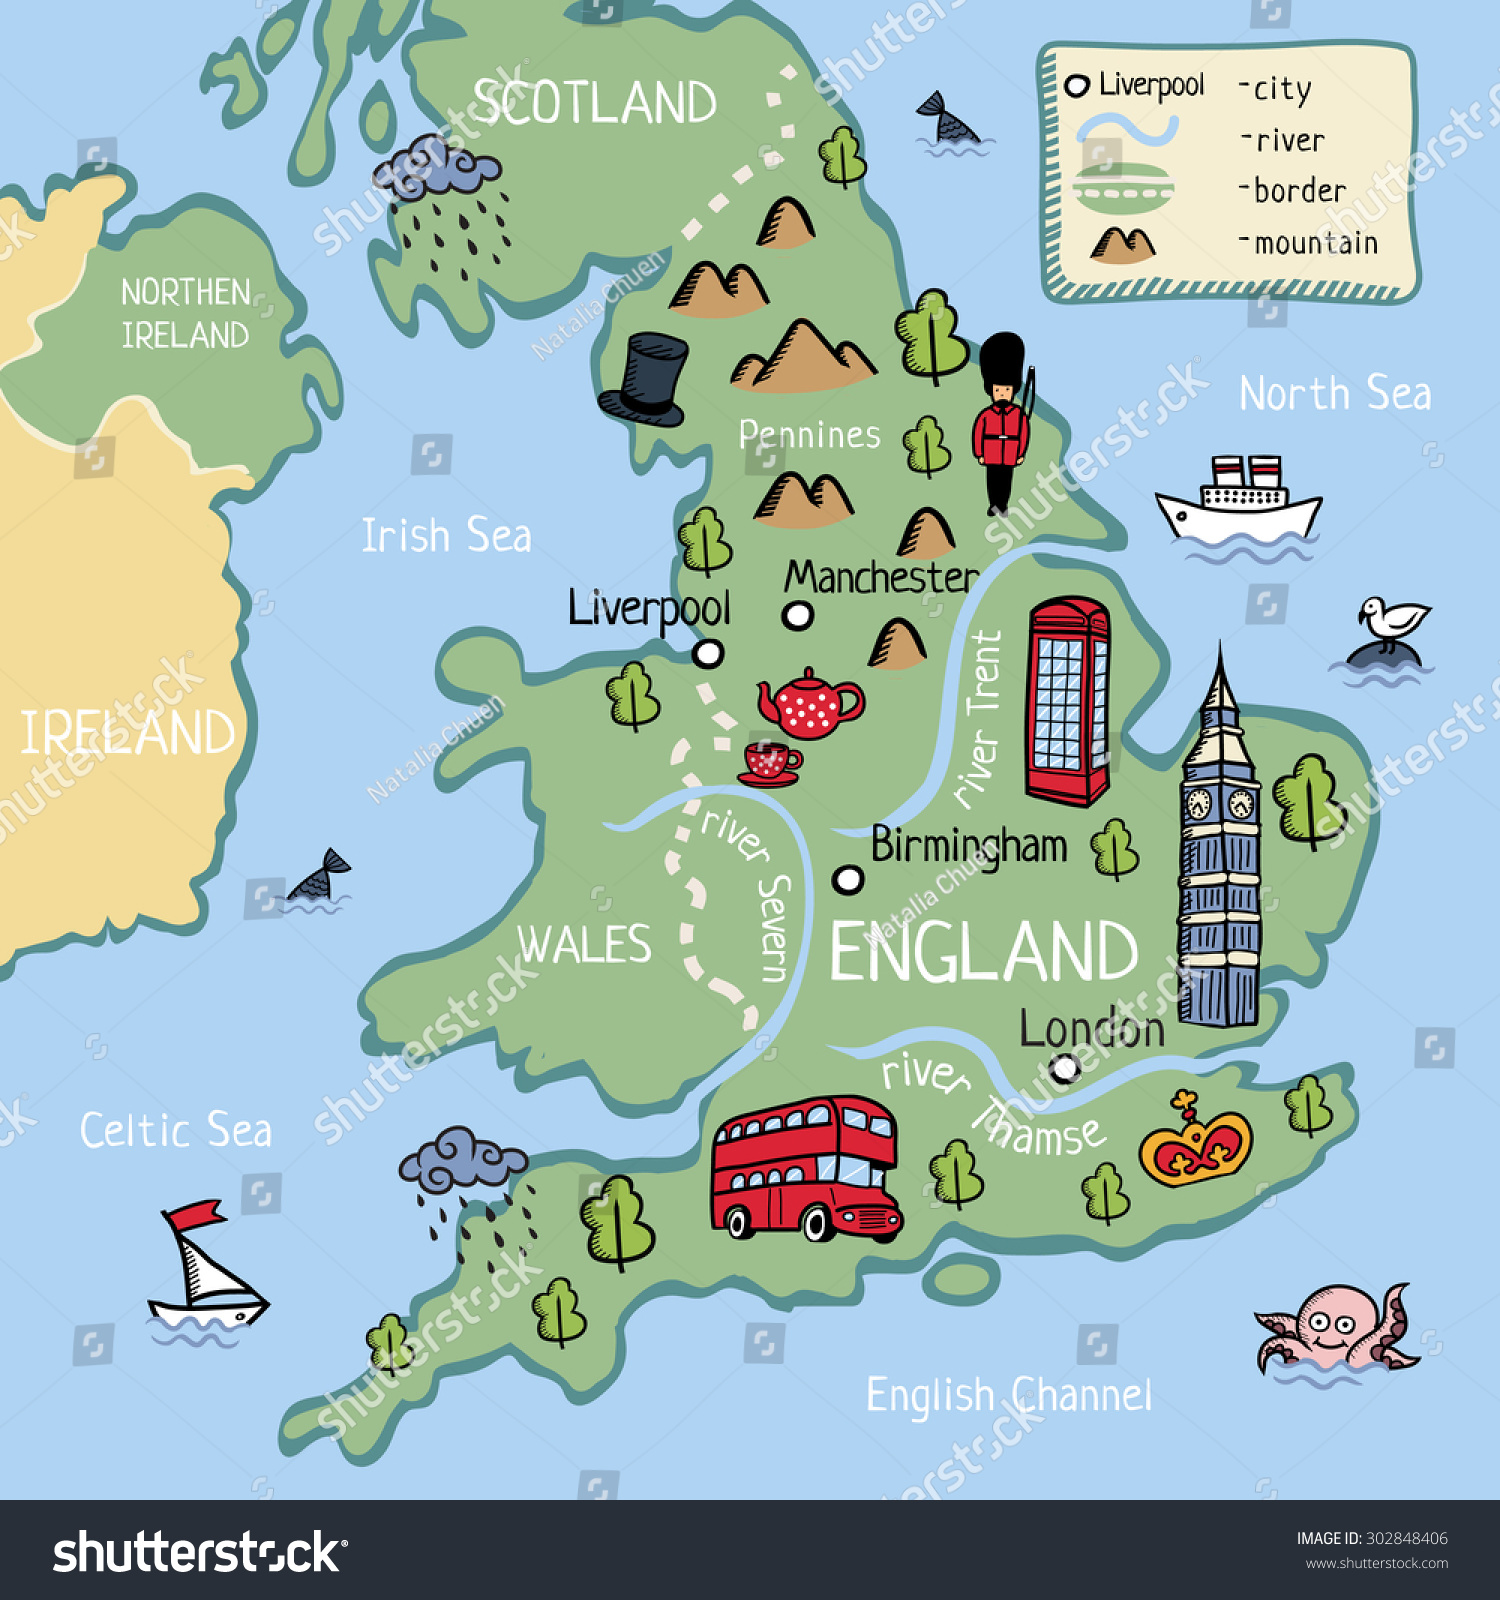 Map Of England For Children London Map - England map